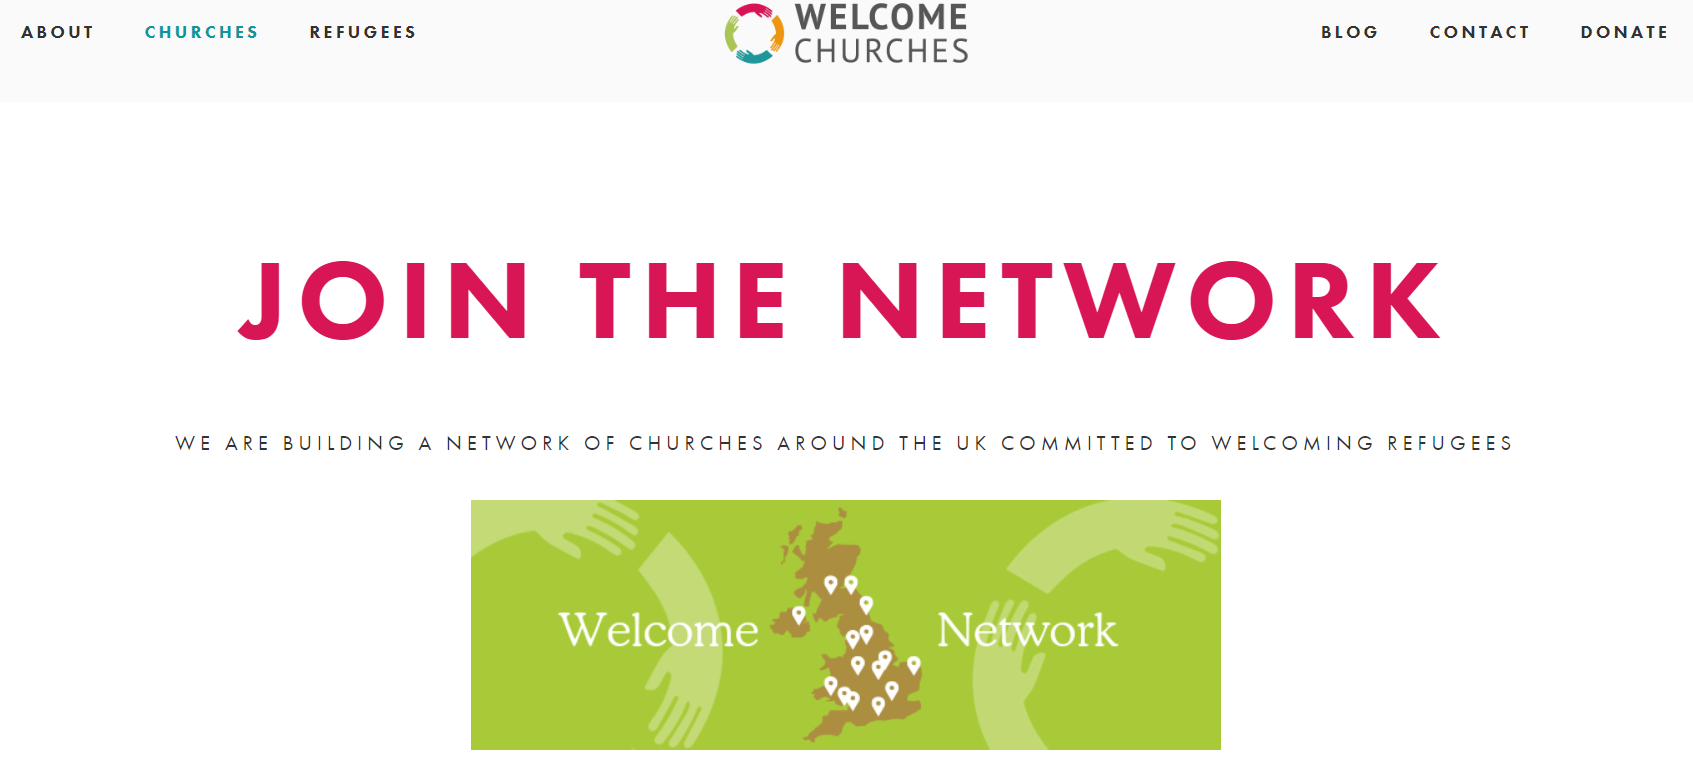 Welcome Churches website